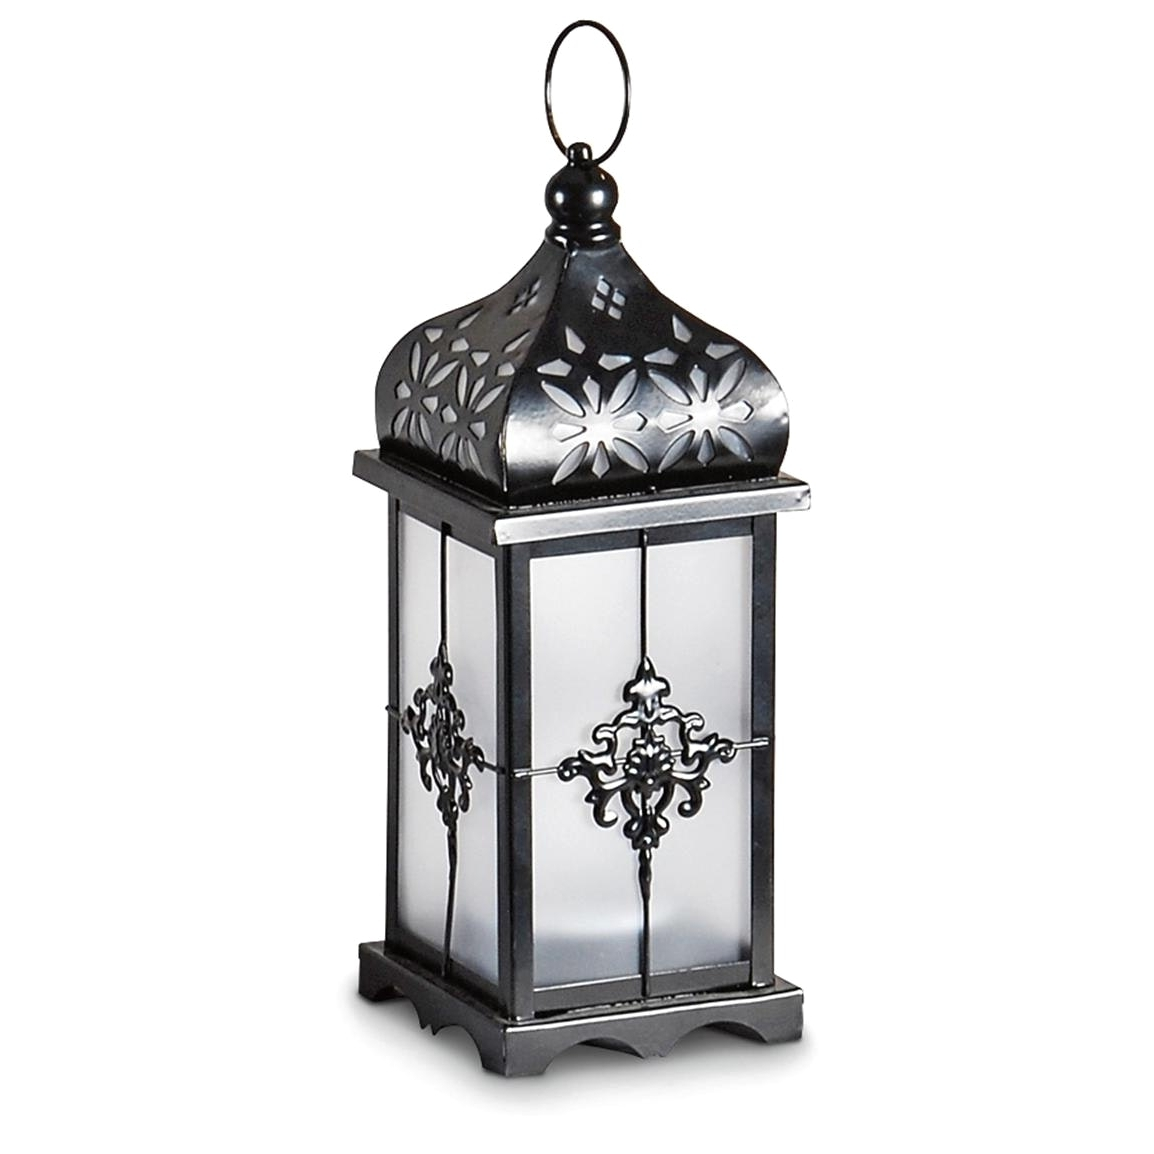 2019 Led Outdoor Hanging Lanterns With Solar Powered Outdoor Hanging Light And Decoration Decorative  (View 3 of 20)